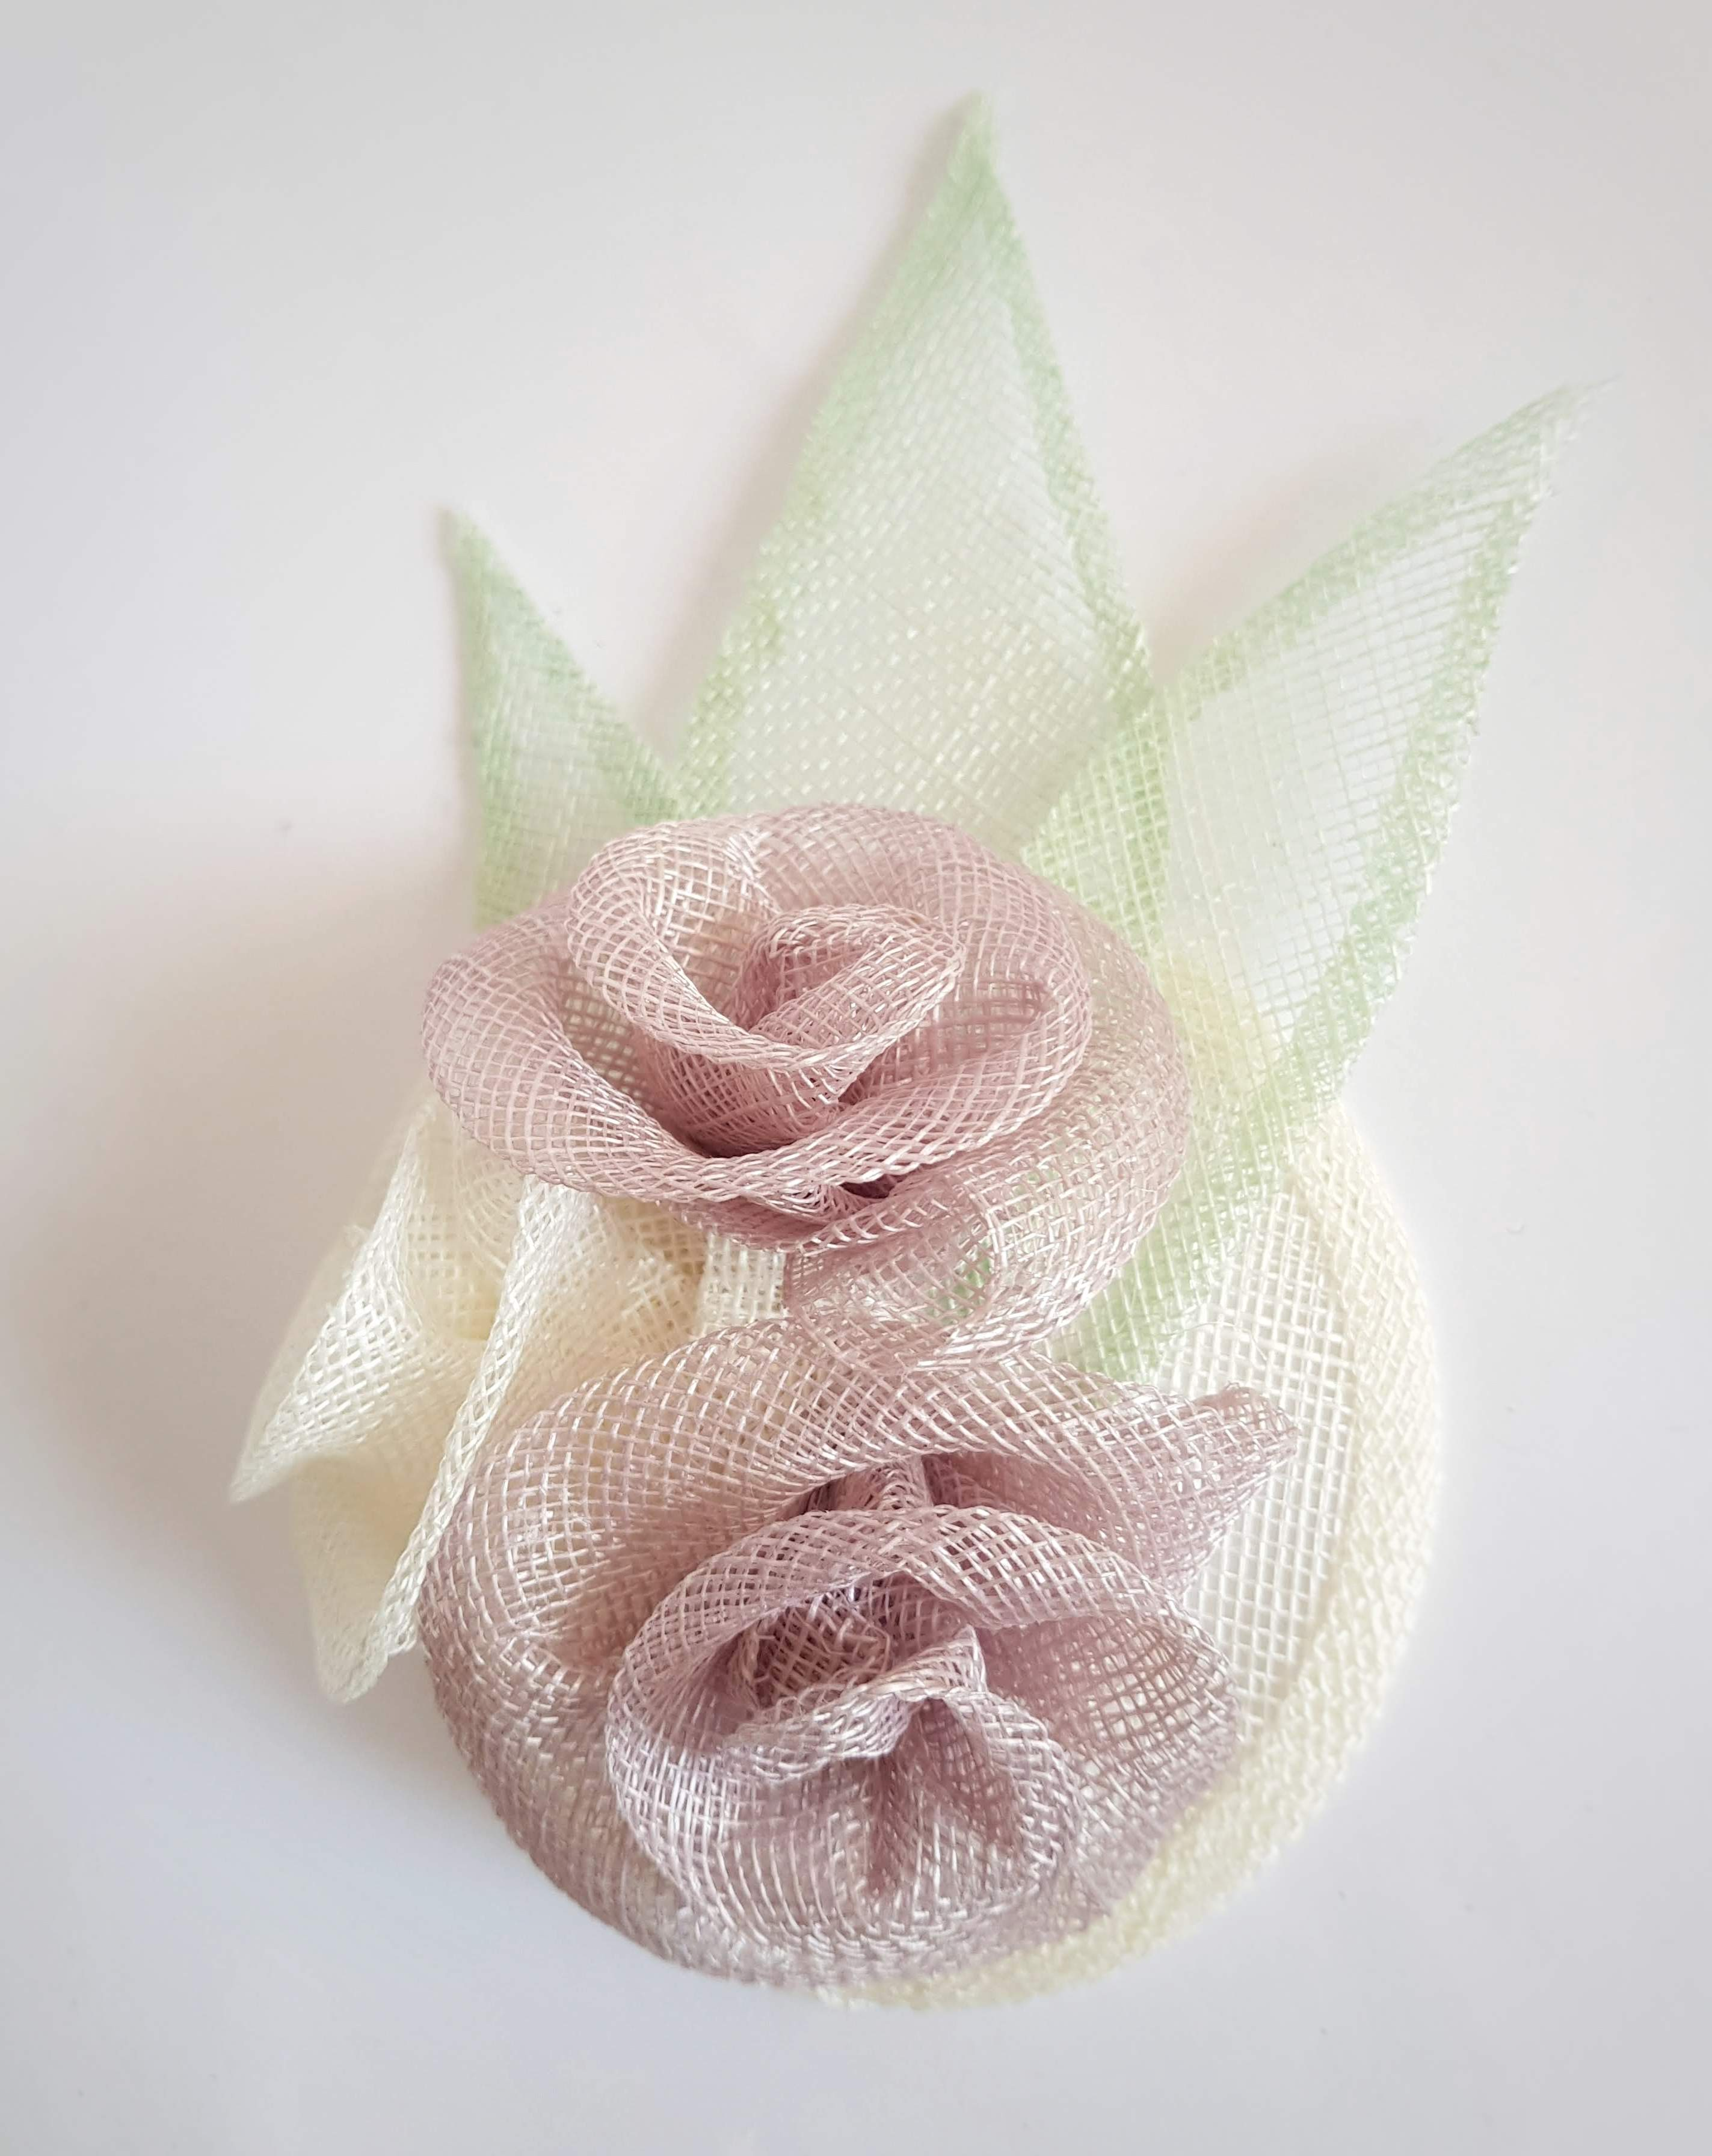 Introduction to Millinery: Make your own Fascinator